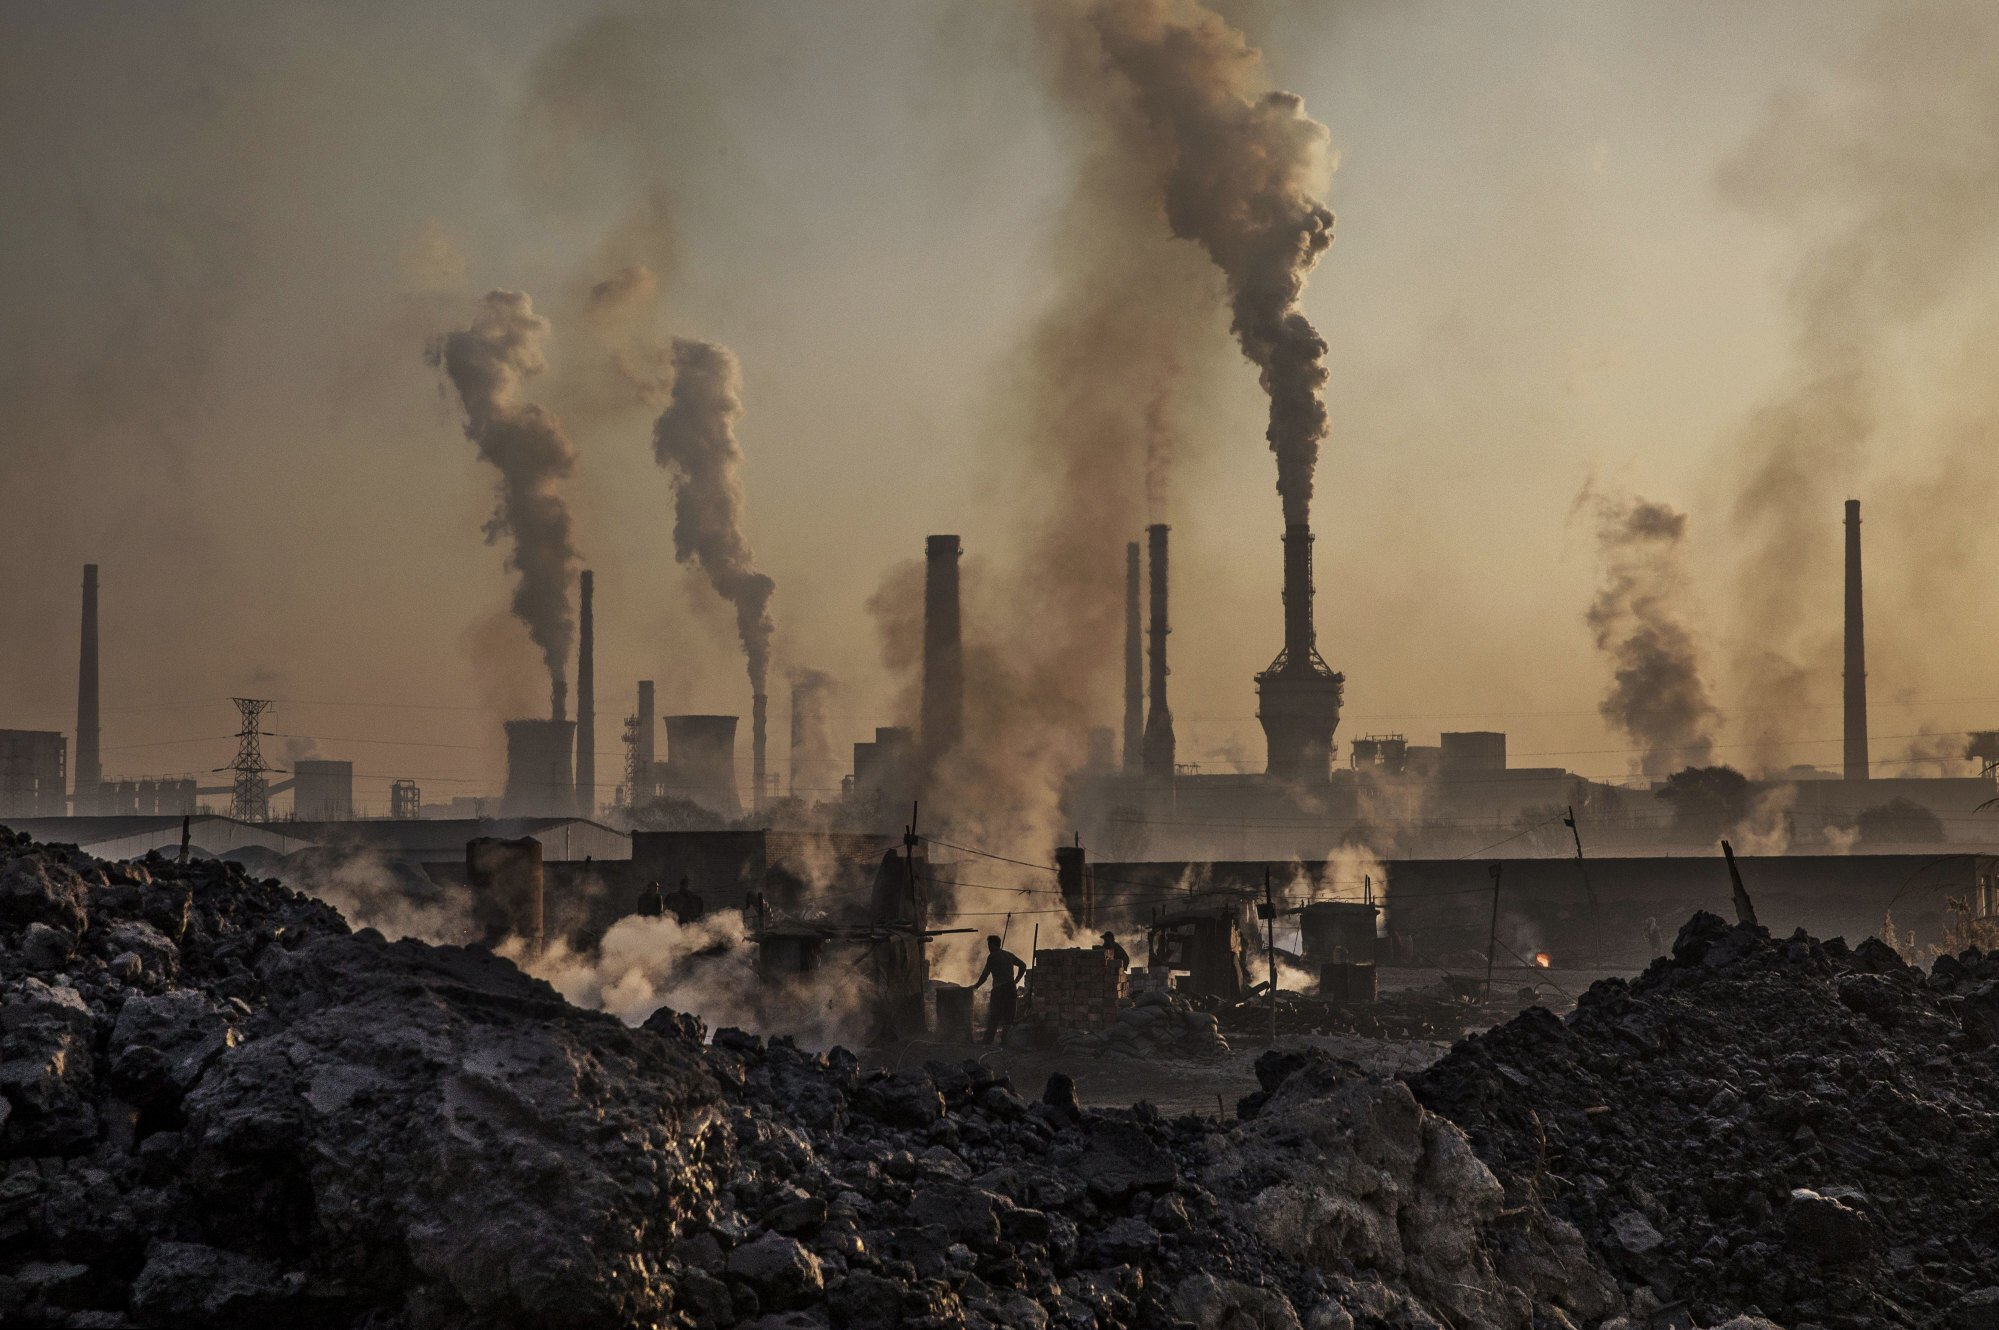 Smoke billows from a large steel plant in China's Inner Mongolia region on November 4, 2016. Photo: Getty Images